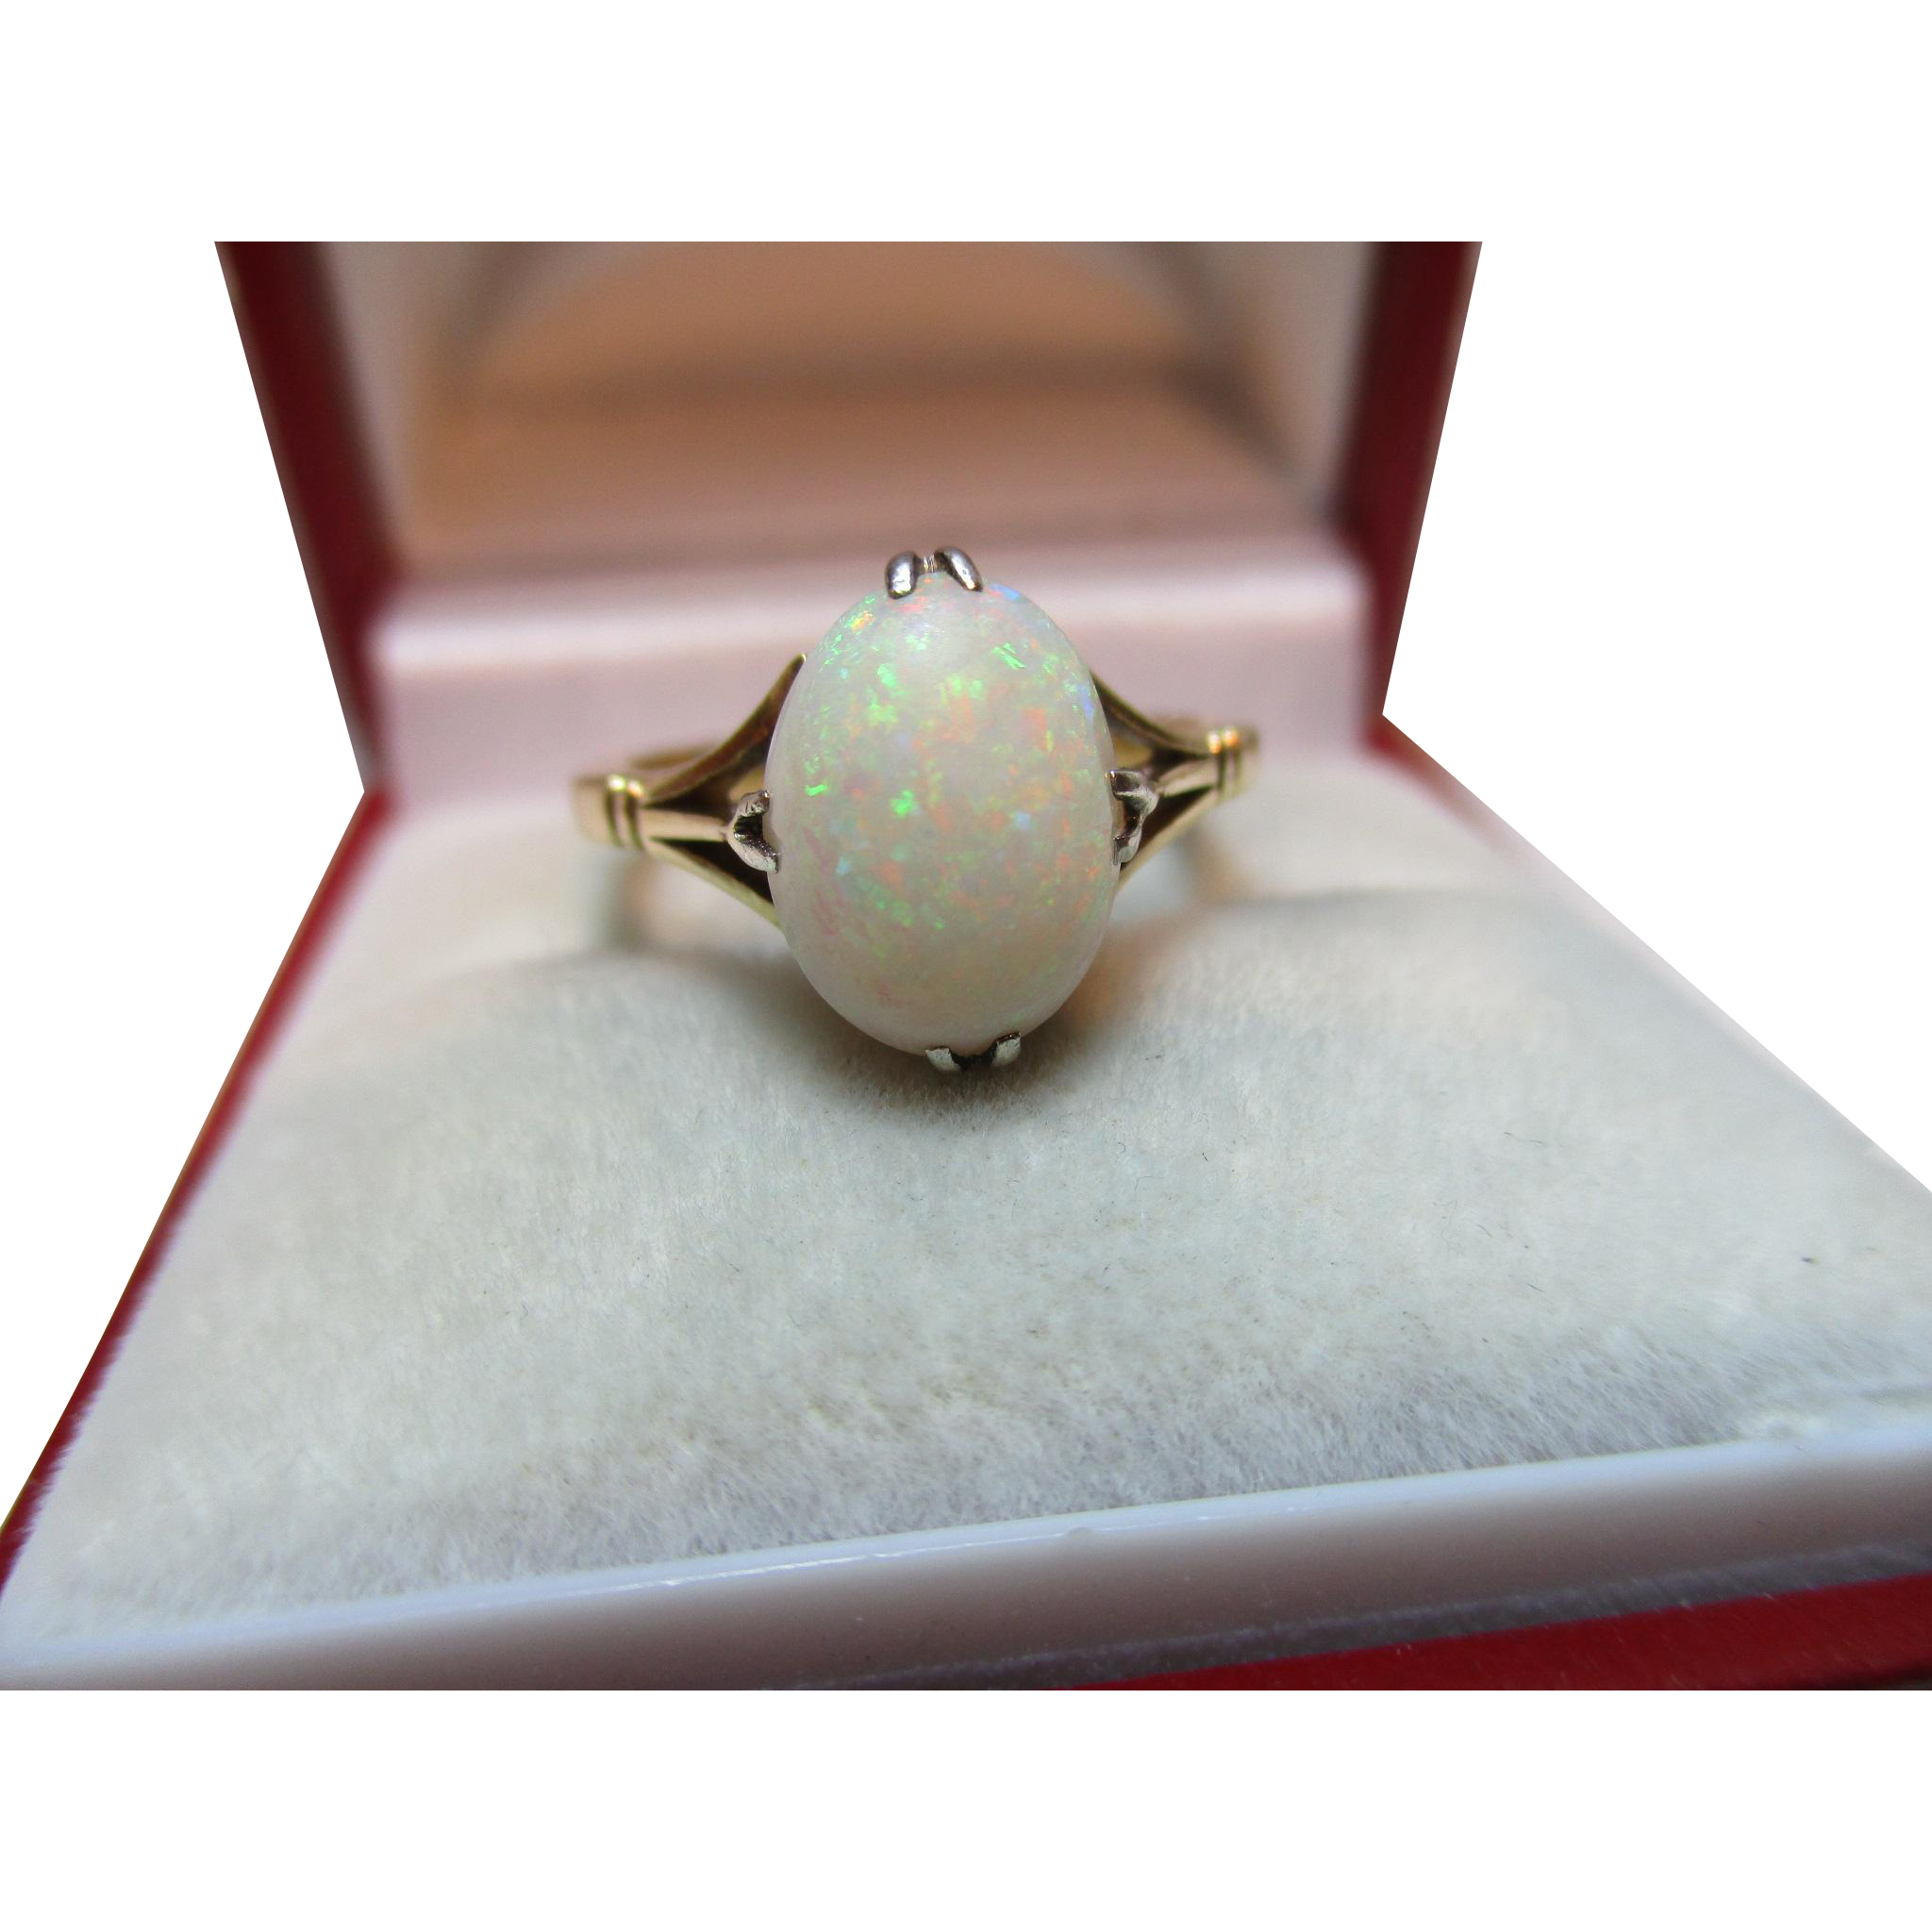 Antique 18ct Solid Gold 'Cushion Shaped' Opal Solitaire Gemstone Ring{2.9 Grams}